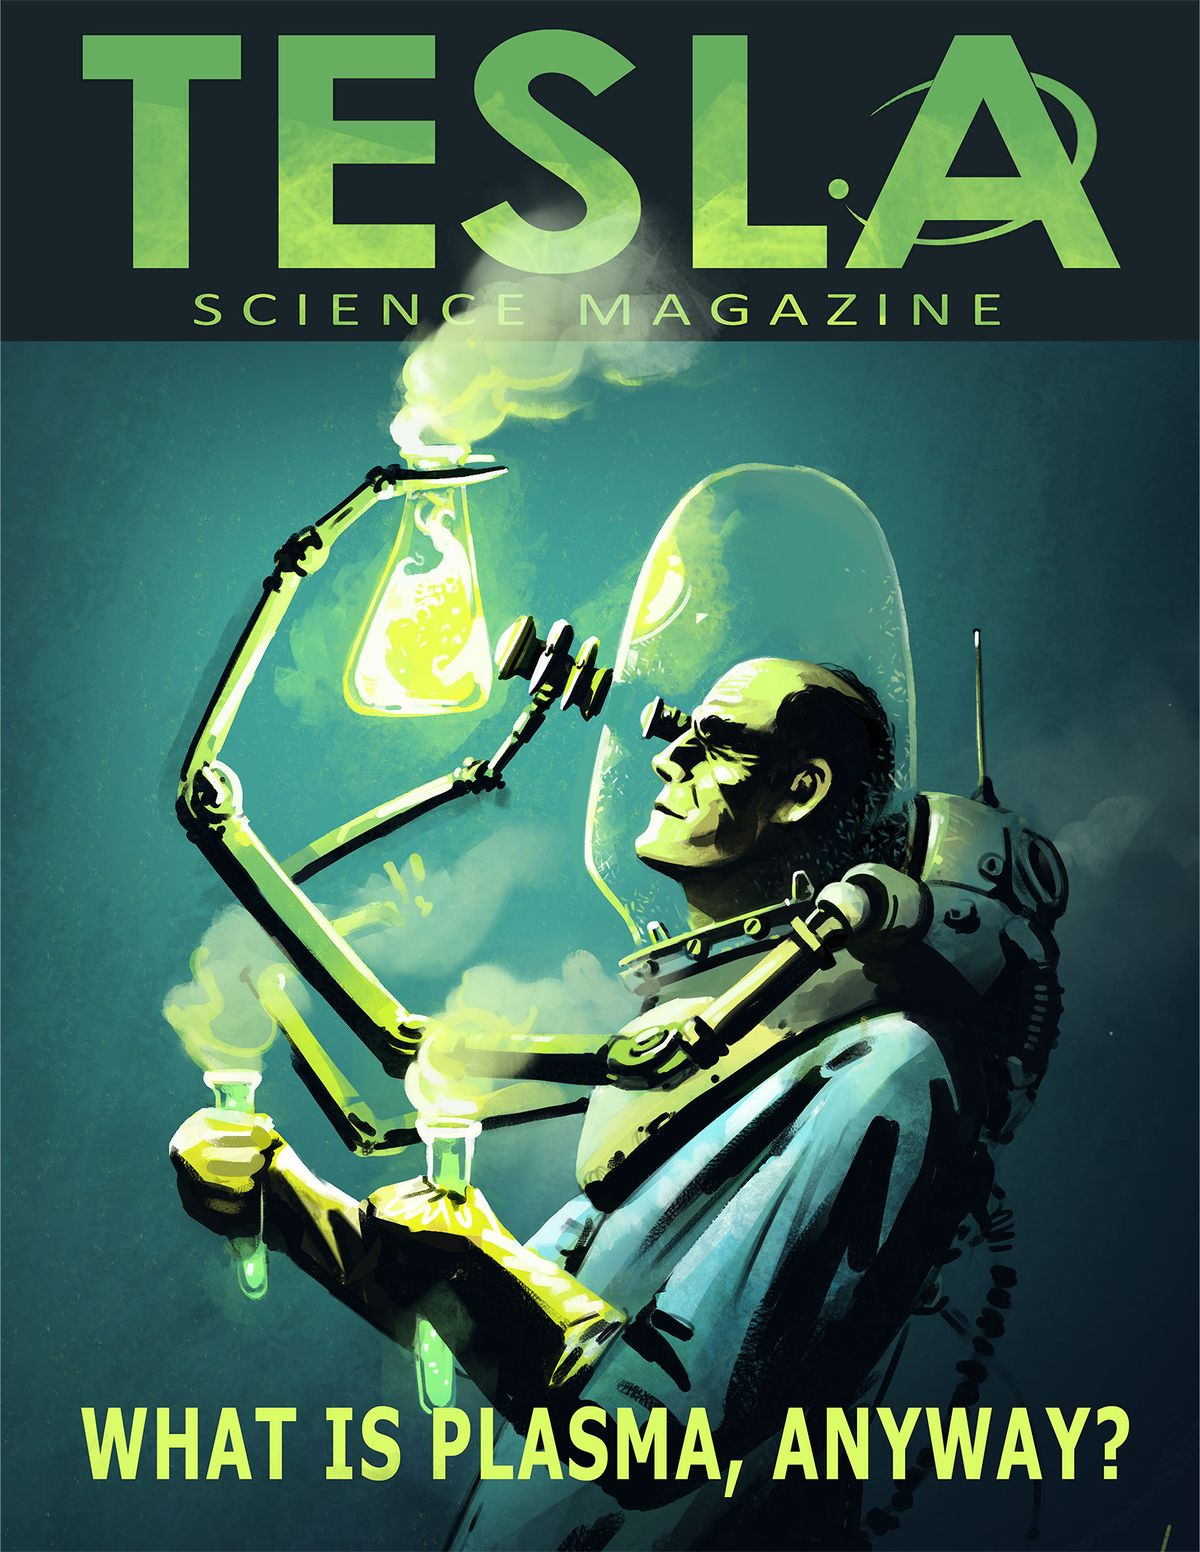 Tesla Science Magazine - The Vault Fallout Wiki - Everything